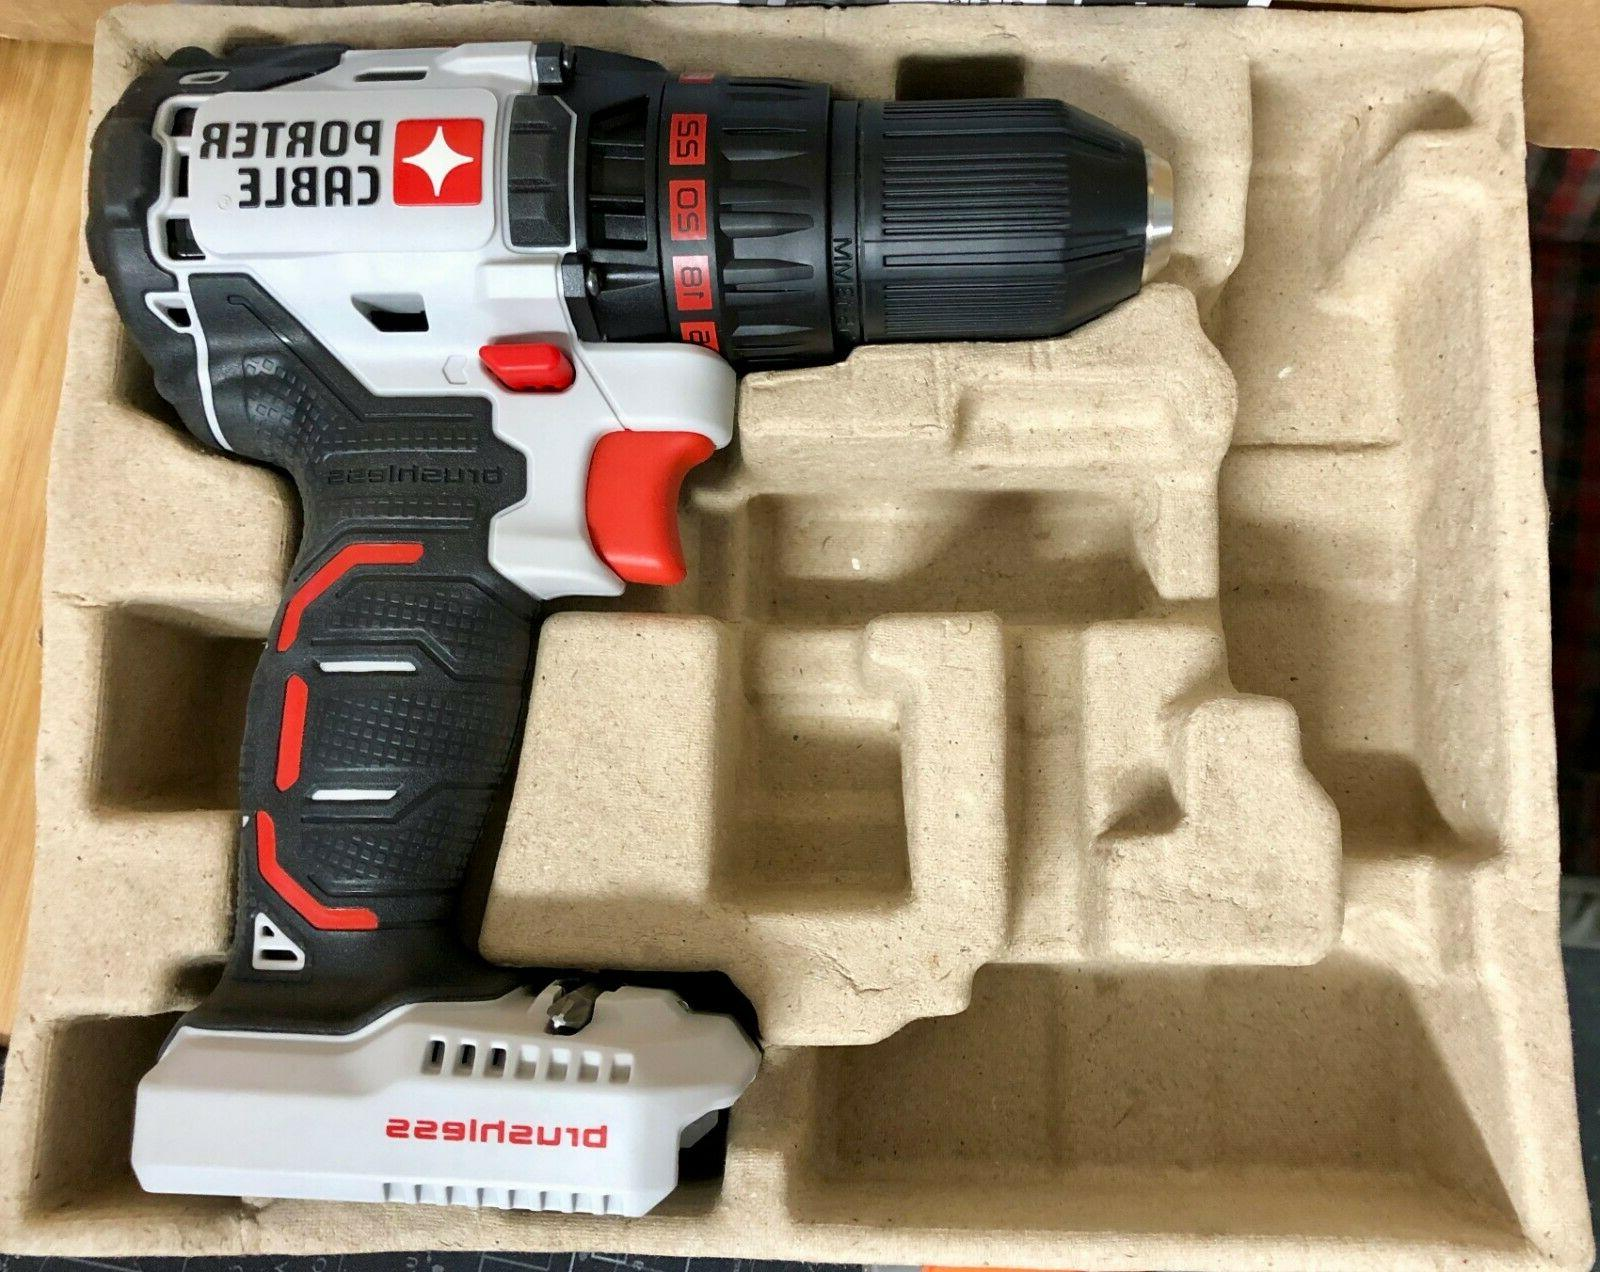 "Brushless Drill Driver PCC608 20V 1/2"" Body ONLY"